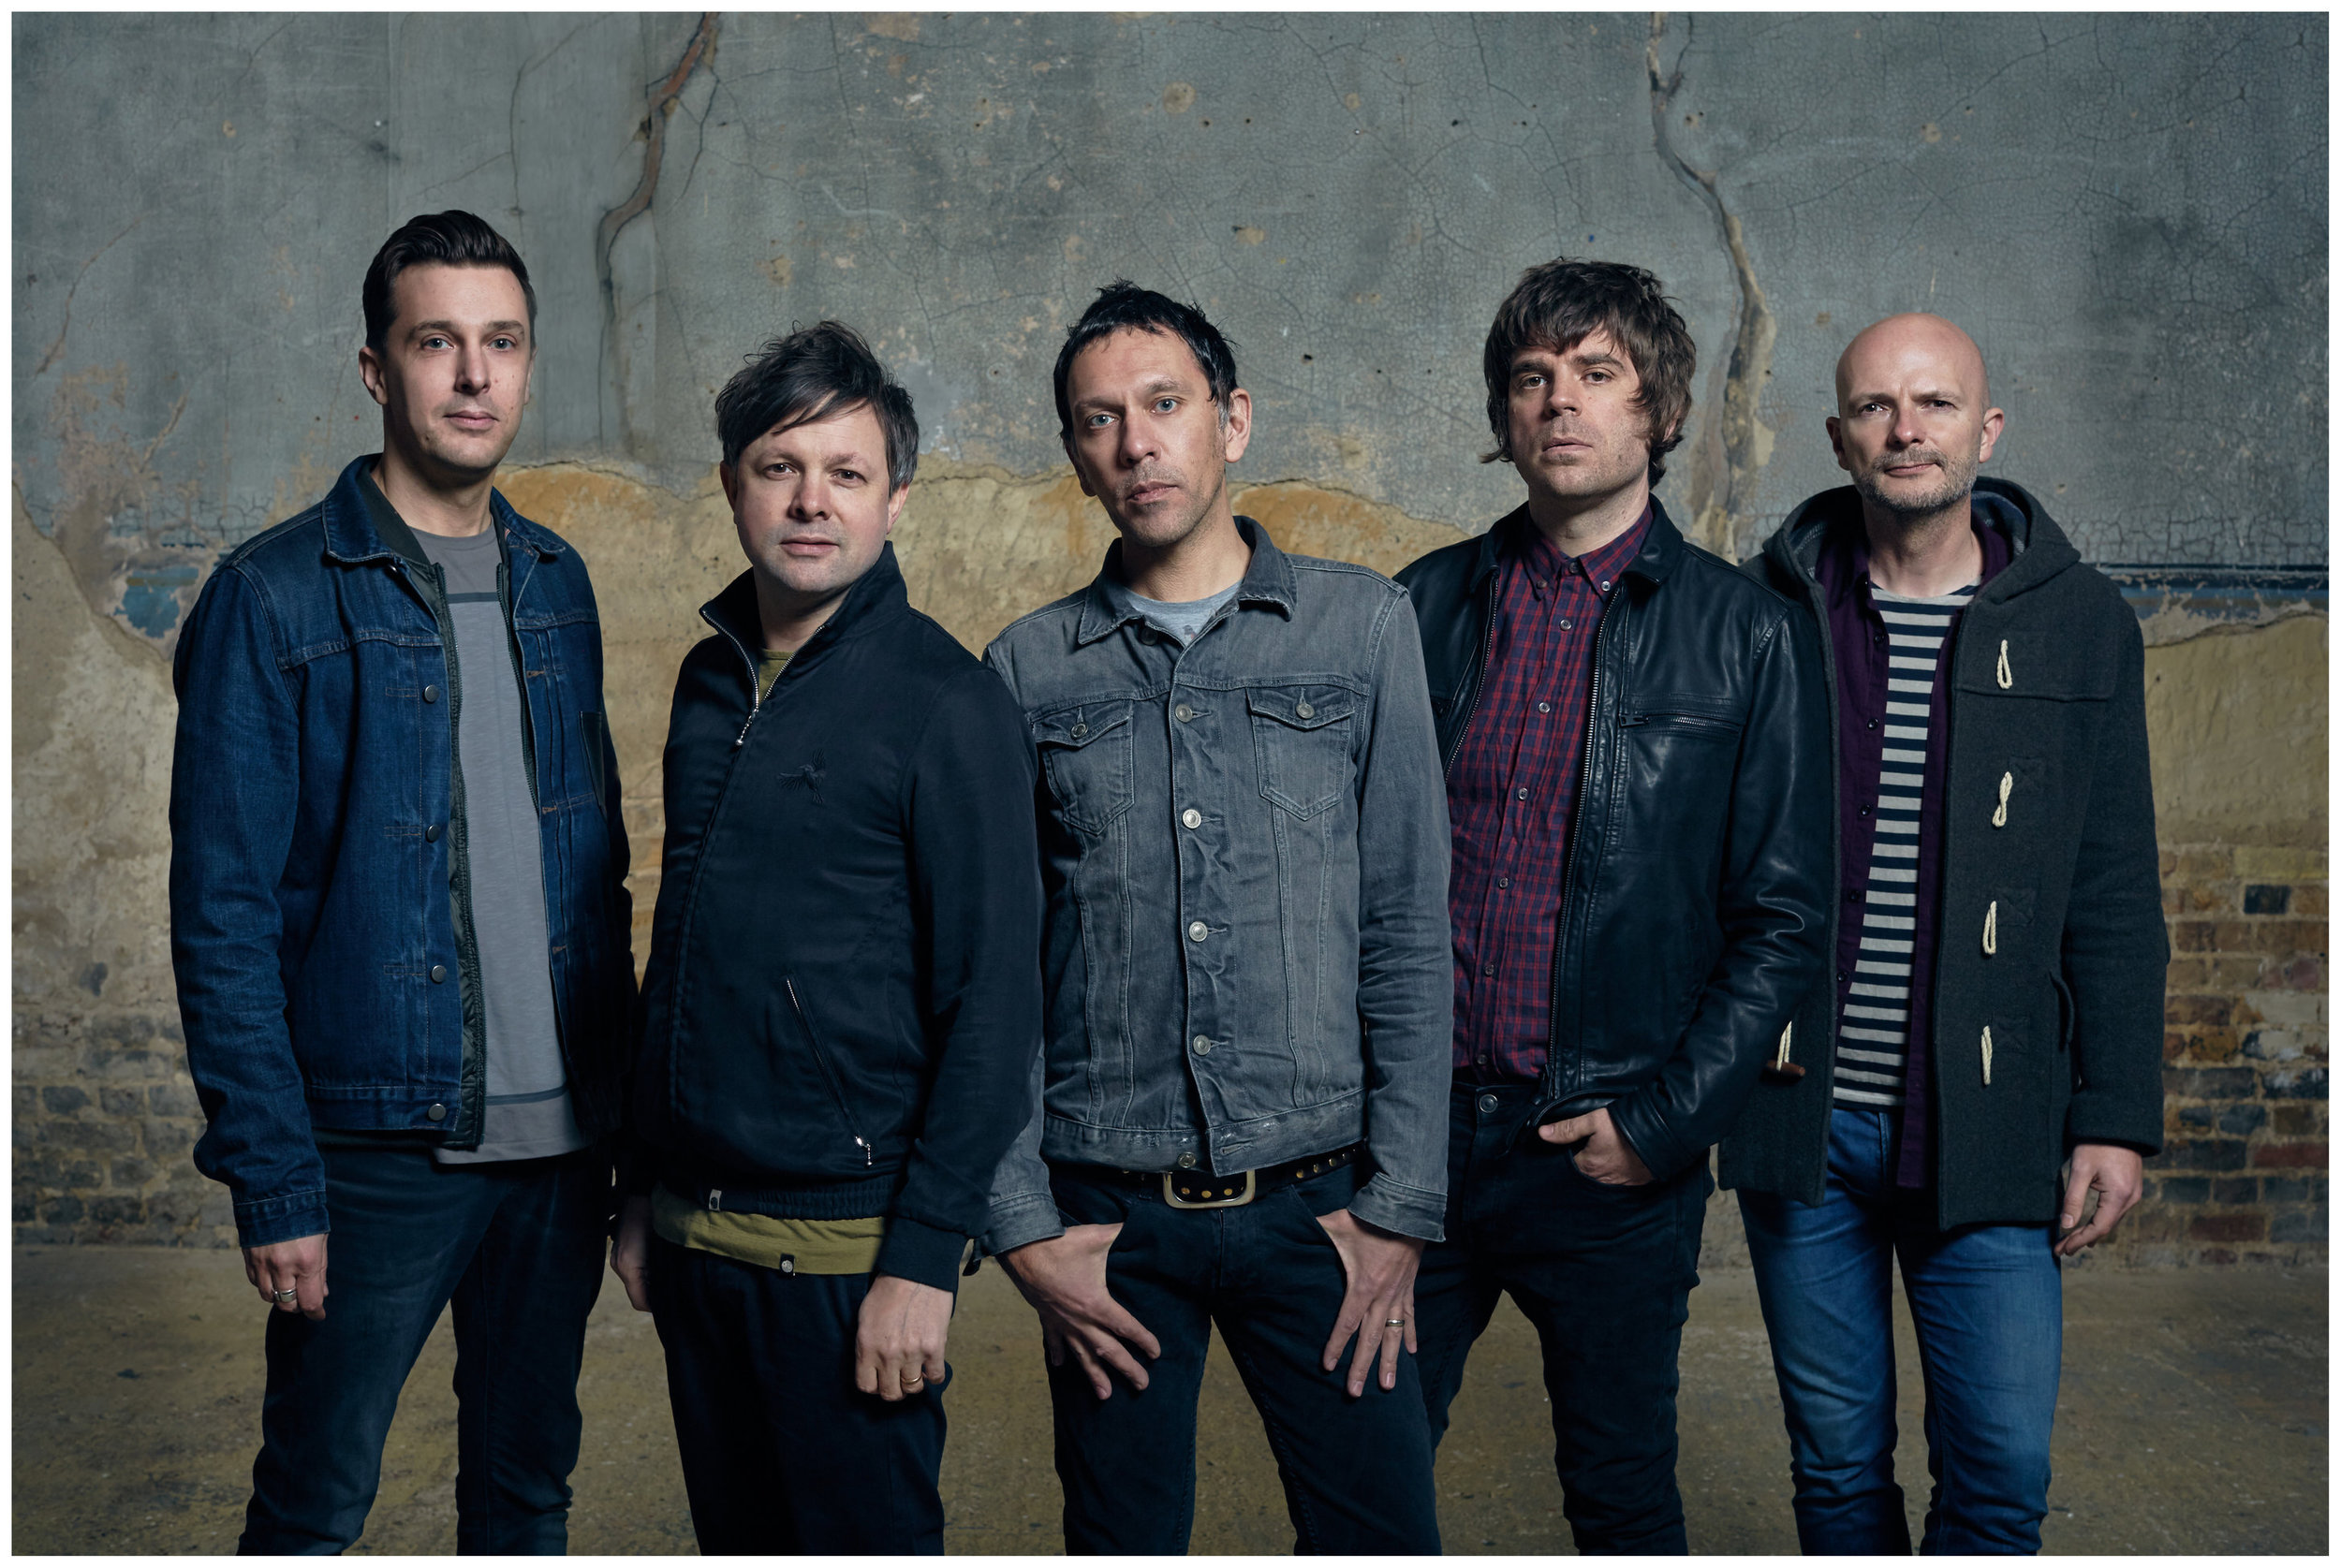 See Shed Seven perform at Leeds First Direct Arena as their guests and enjoy a meet and greet with the band before the show.